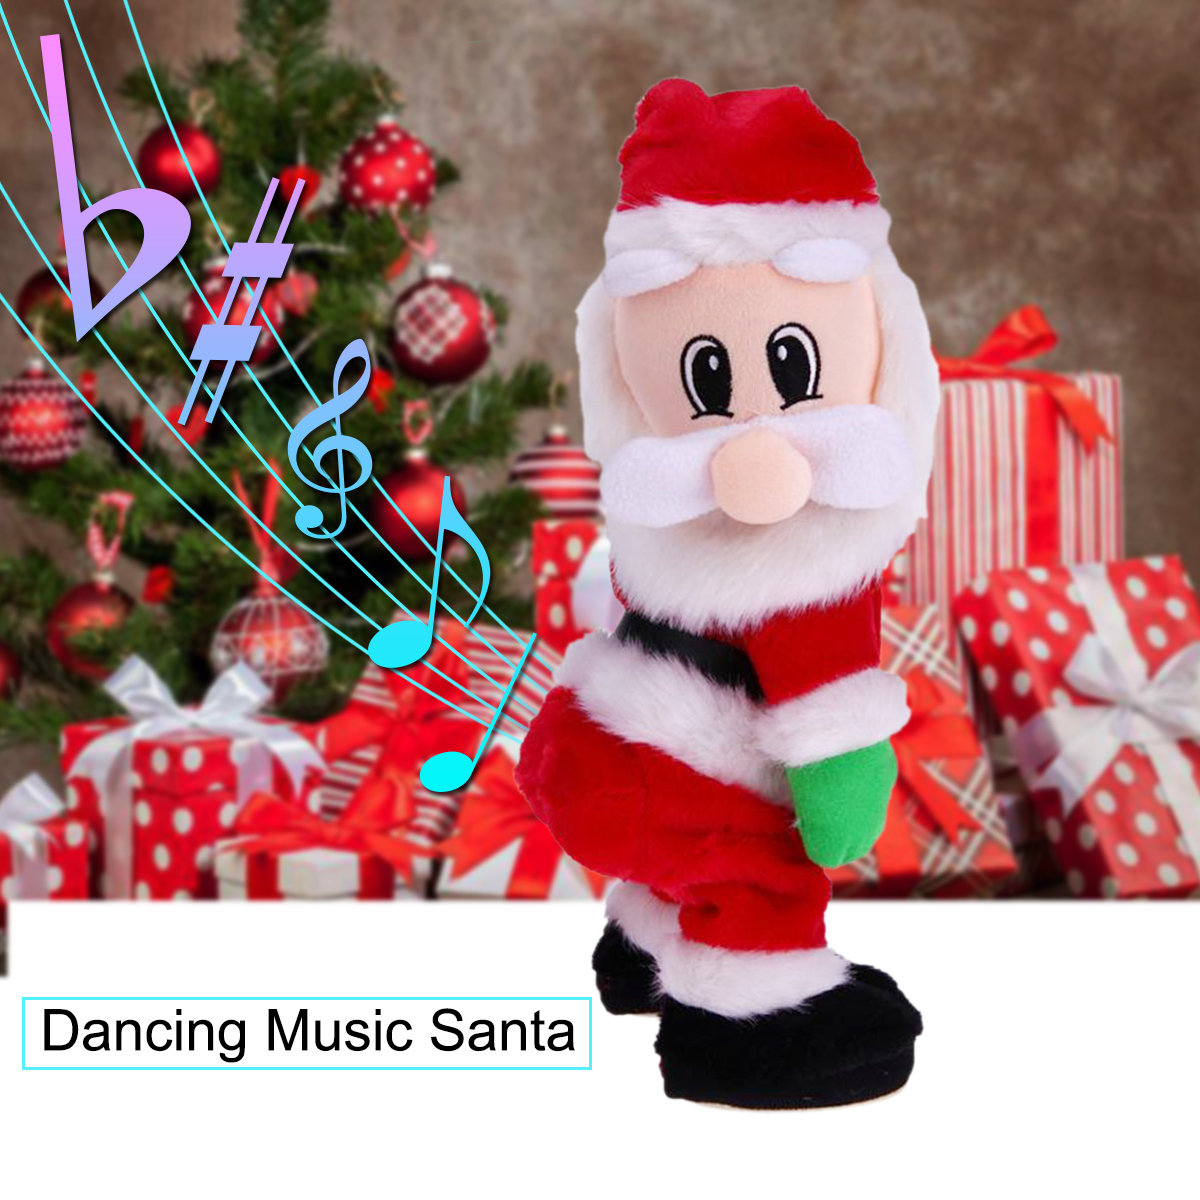 Christmas New Gift Dancing Electric Musical Toy Santa Claus Doll Twerking Singing Christmas Decoration for home